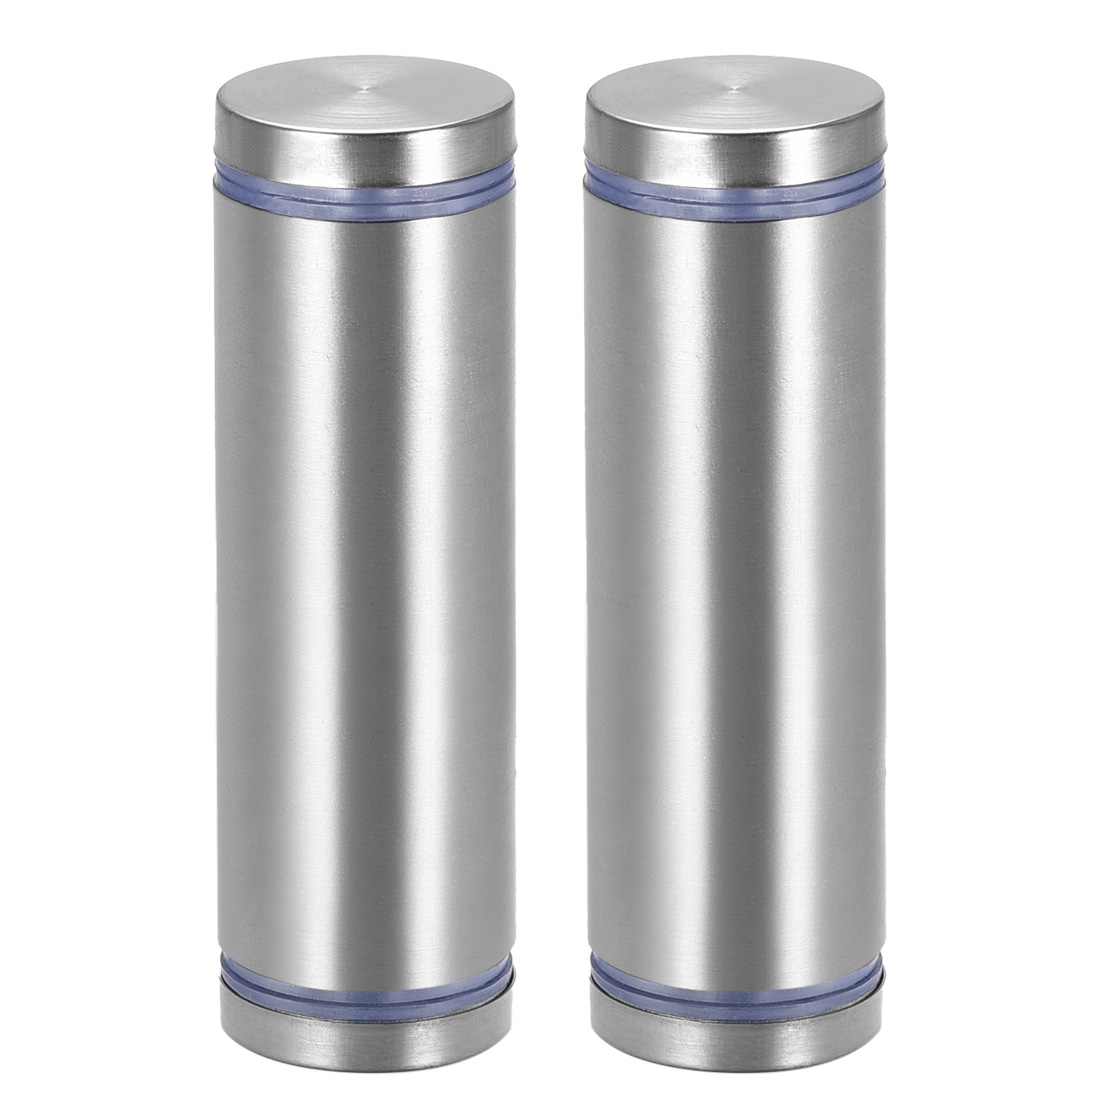 Glass Standoff Double Head Stainless Steel Standoff Holder 25mm x 85mm 2 Pcs